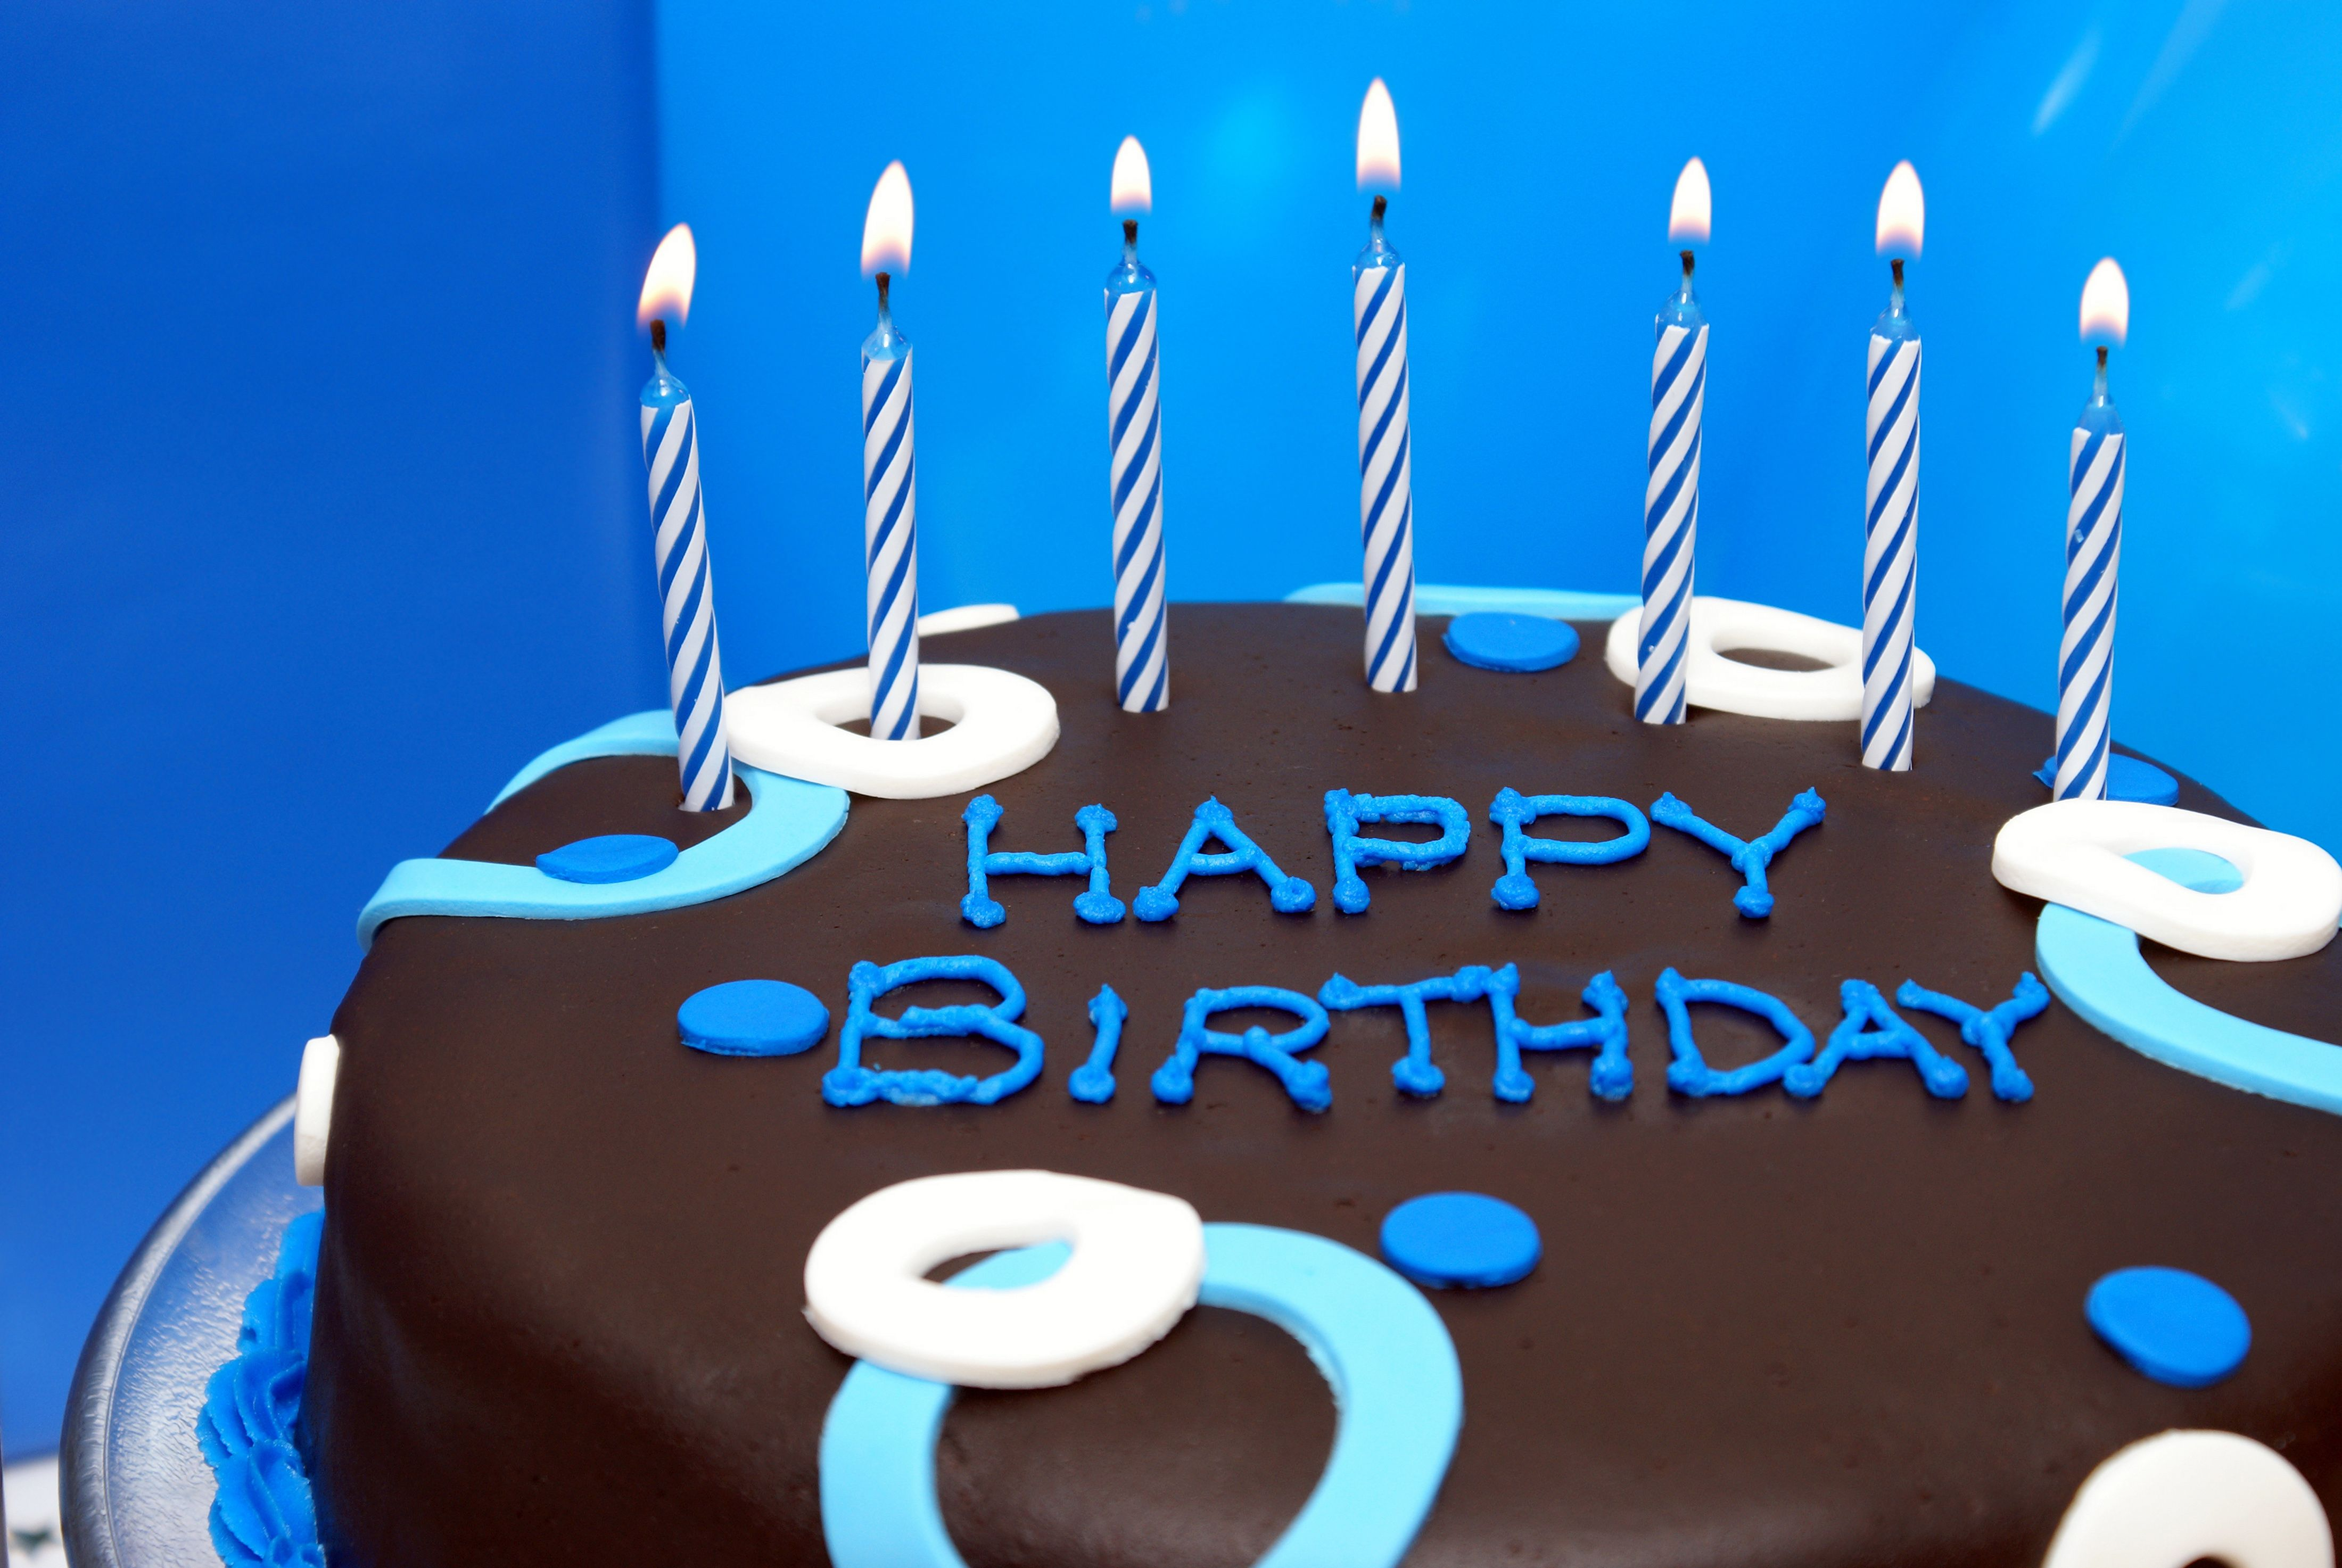 Happy Birthday Wallpapers Top Free Happy Birthday Backgrounds Wallpaperaccess